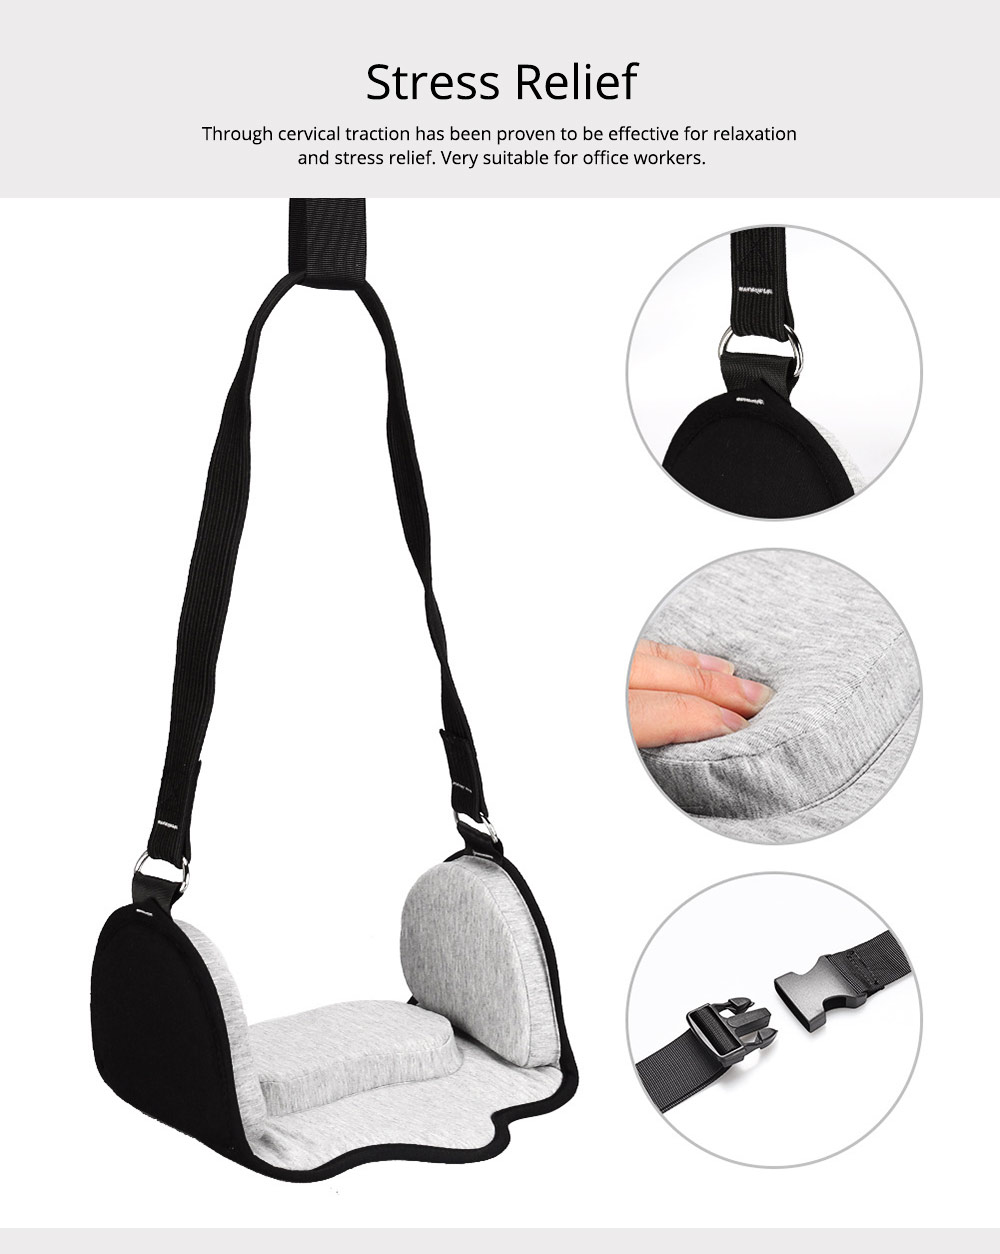 Neck Hammock Cervical Traction Device, Head Hammock for Neck Pain Relief for Office Workers, Drivers, Students, Teachers 1